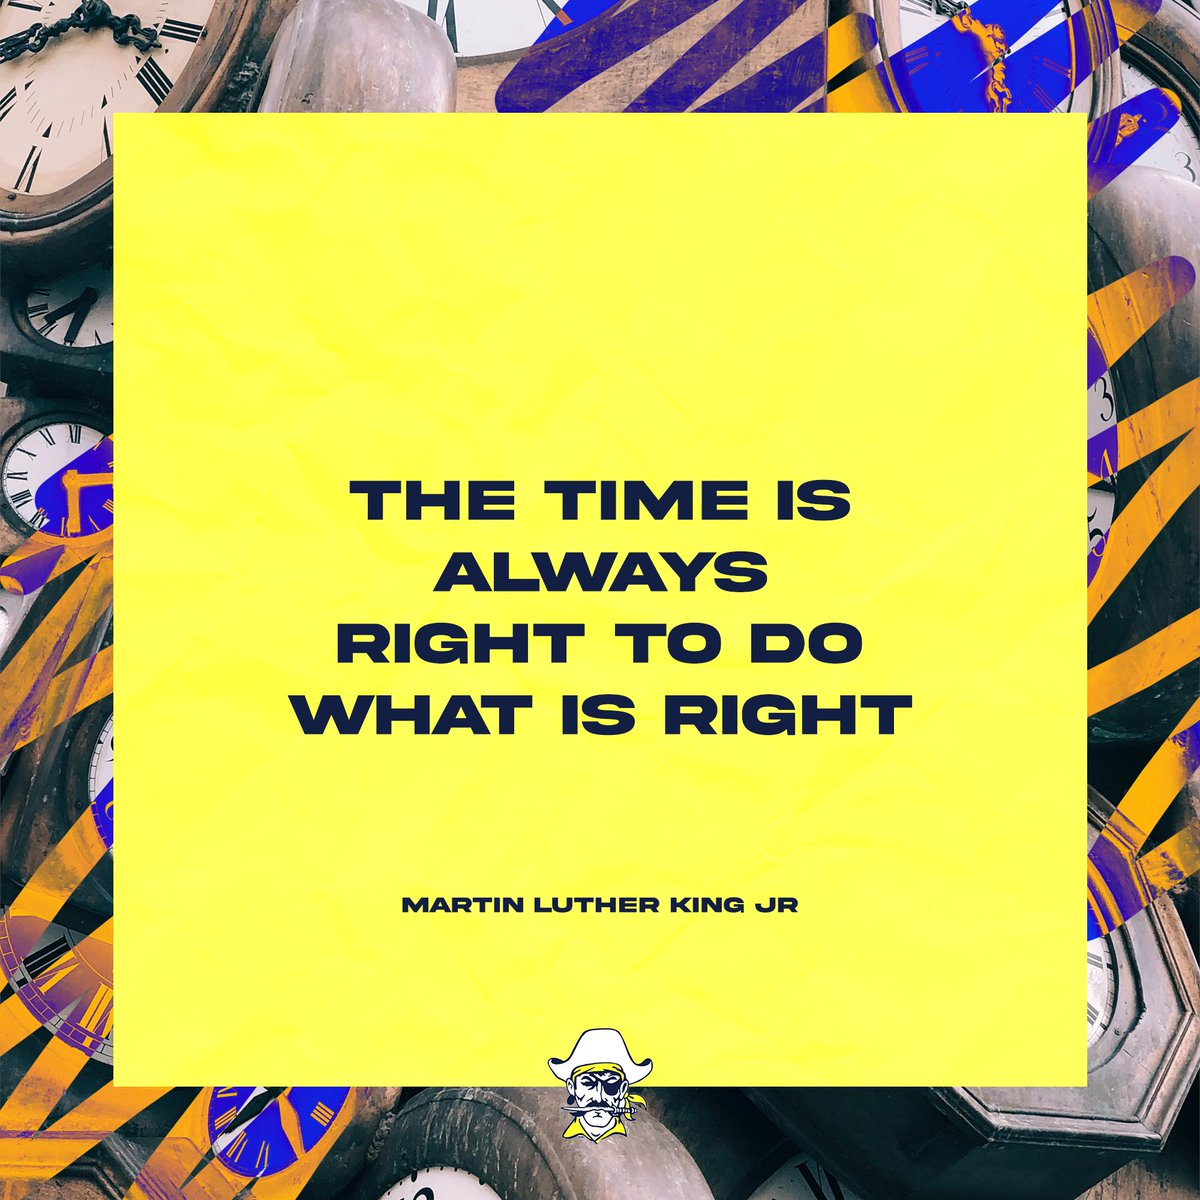 Today is a great day to do the right thing! #CrookstonPirates #MondayMotivation